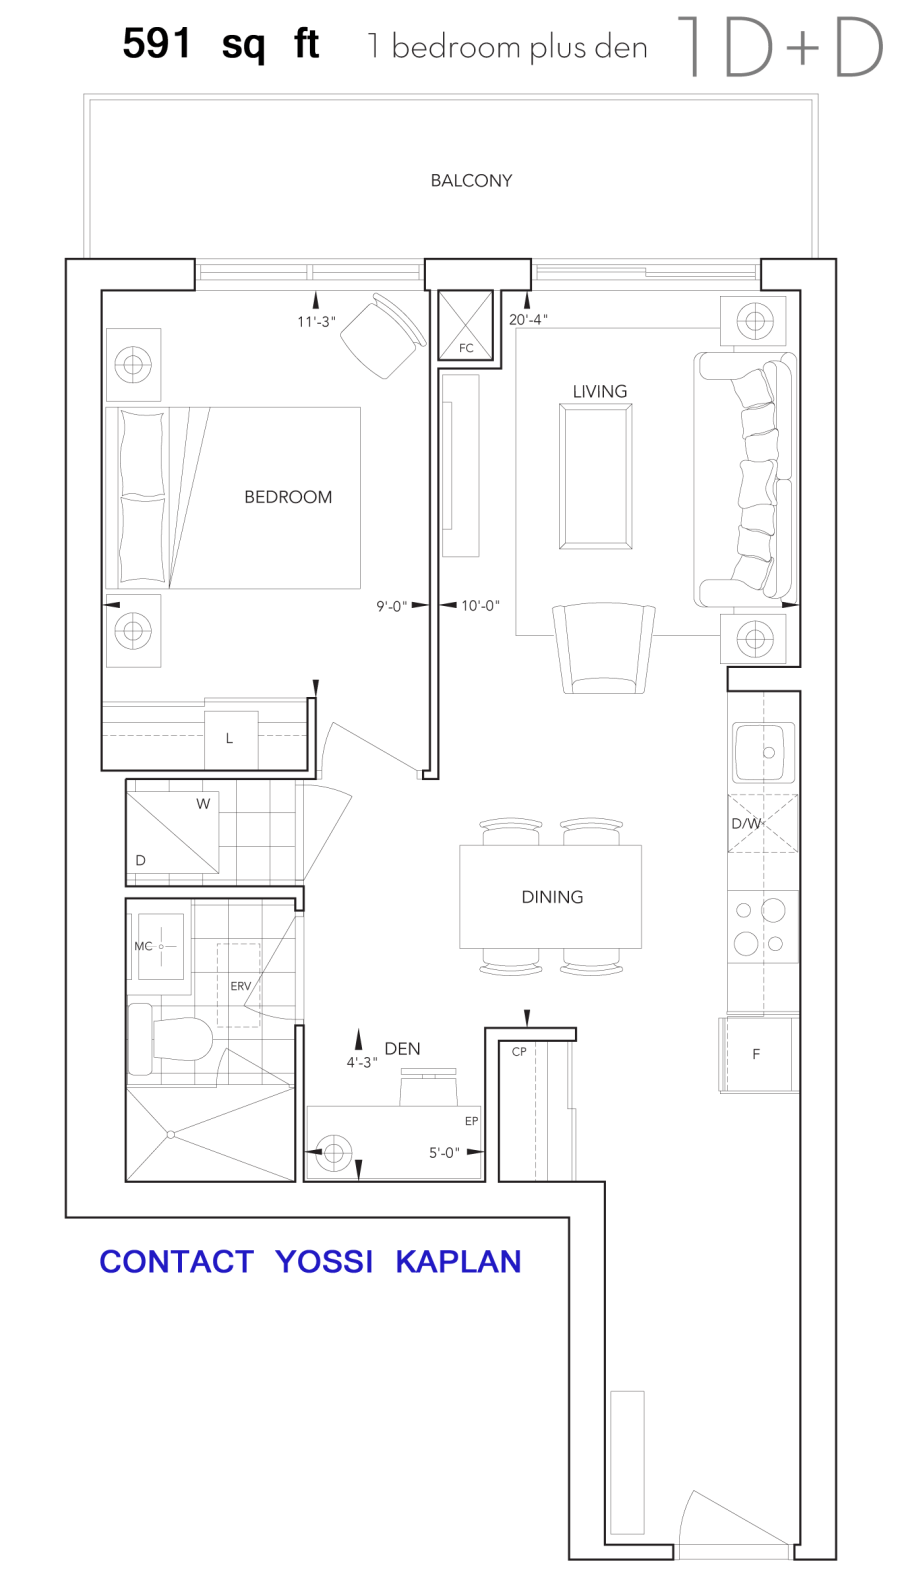 101 ERSKINE CONDOS - FLOORPLAN ONE BEDROOM - CONTACT YOSSI KAPLAN